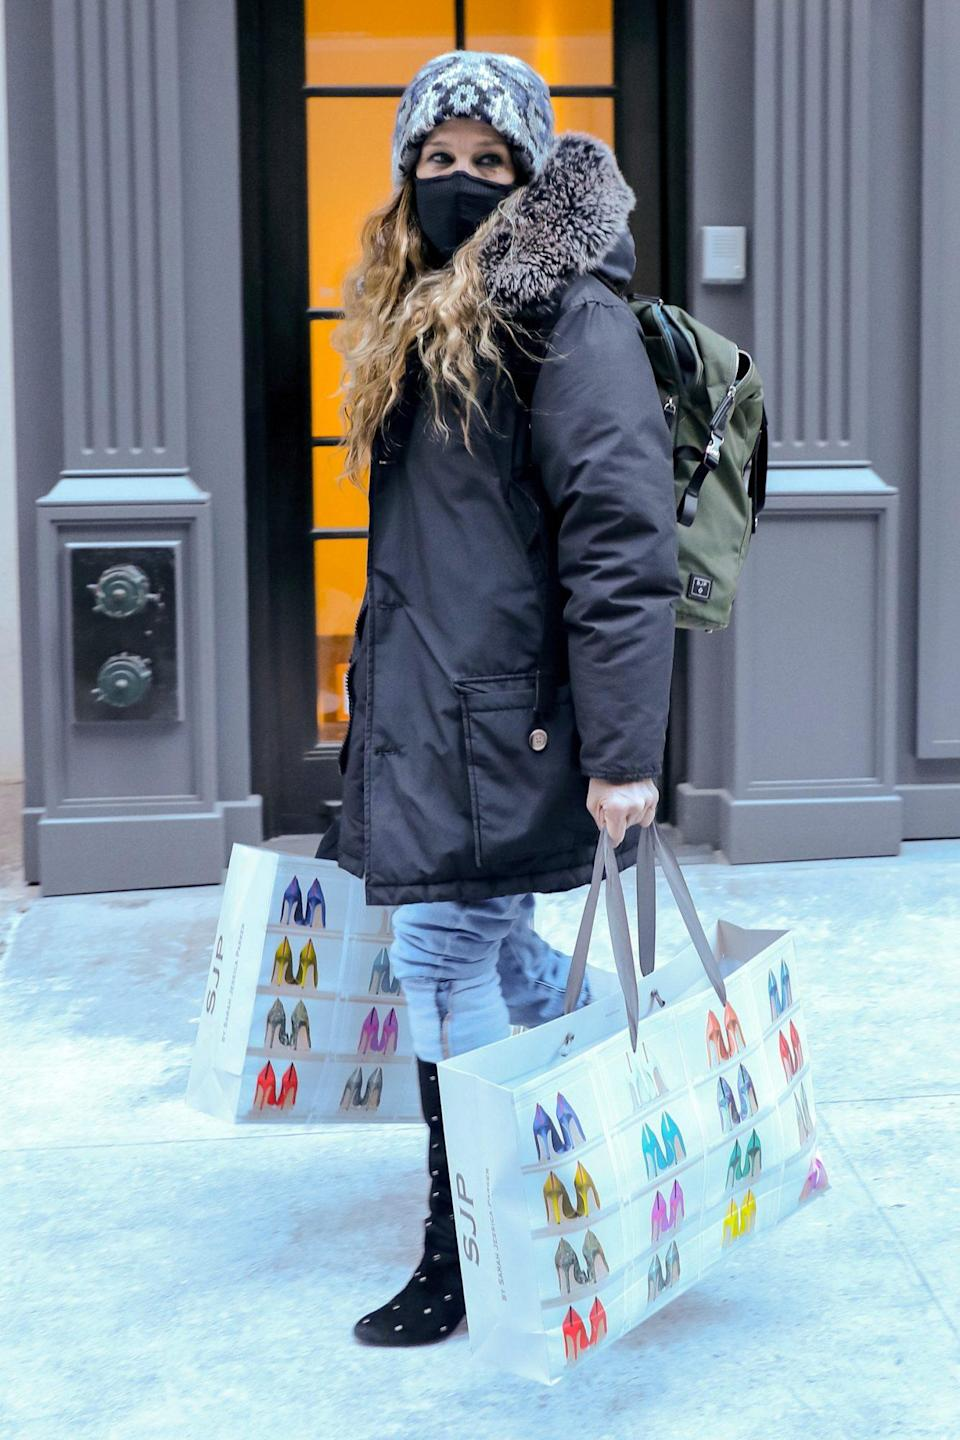 <p>Sarah Jessica Parker has bags full of SJP by Sarah Jessica Parker merch in hand as she leaves her store on Sunday in N.Y.C.</p>